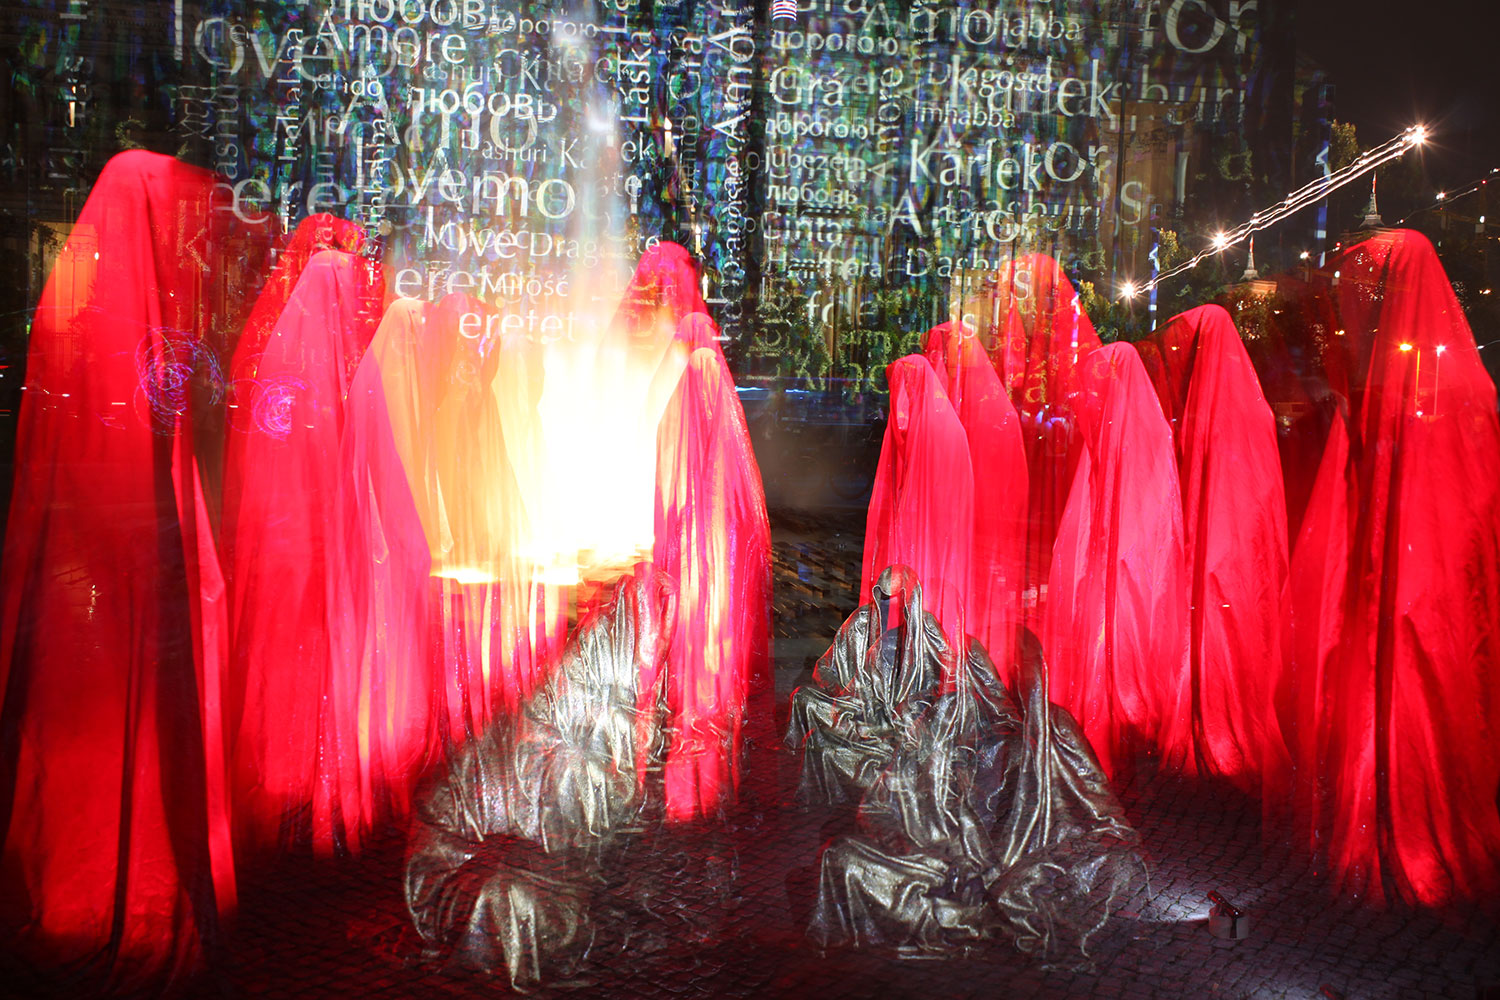 festival-of-lights-old-museum-cathedral-berlin-light-art-show-exhibition-lumina-guardians-of-time-manfred-kili-kielnhofer-contemporary-arts-design-sculpture-3000 - Kopie